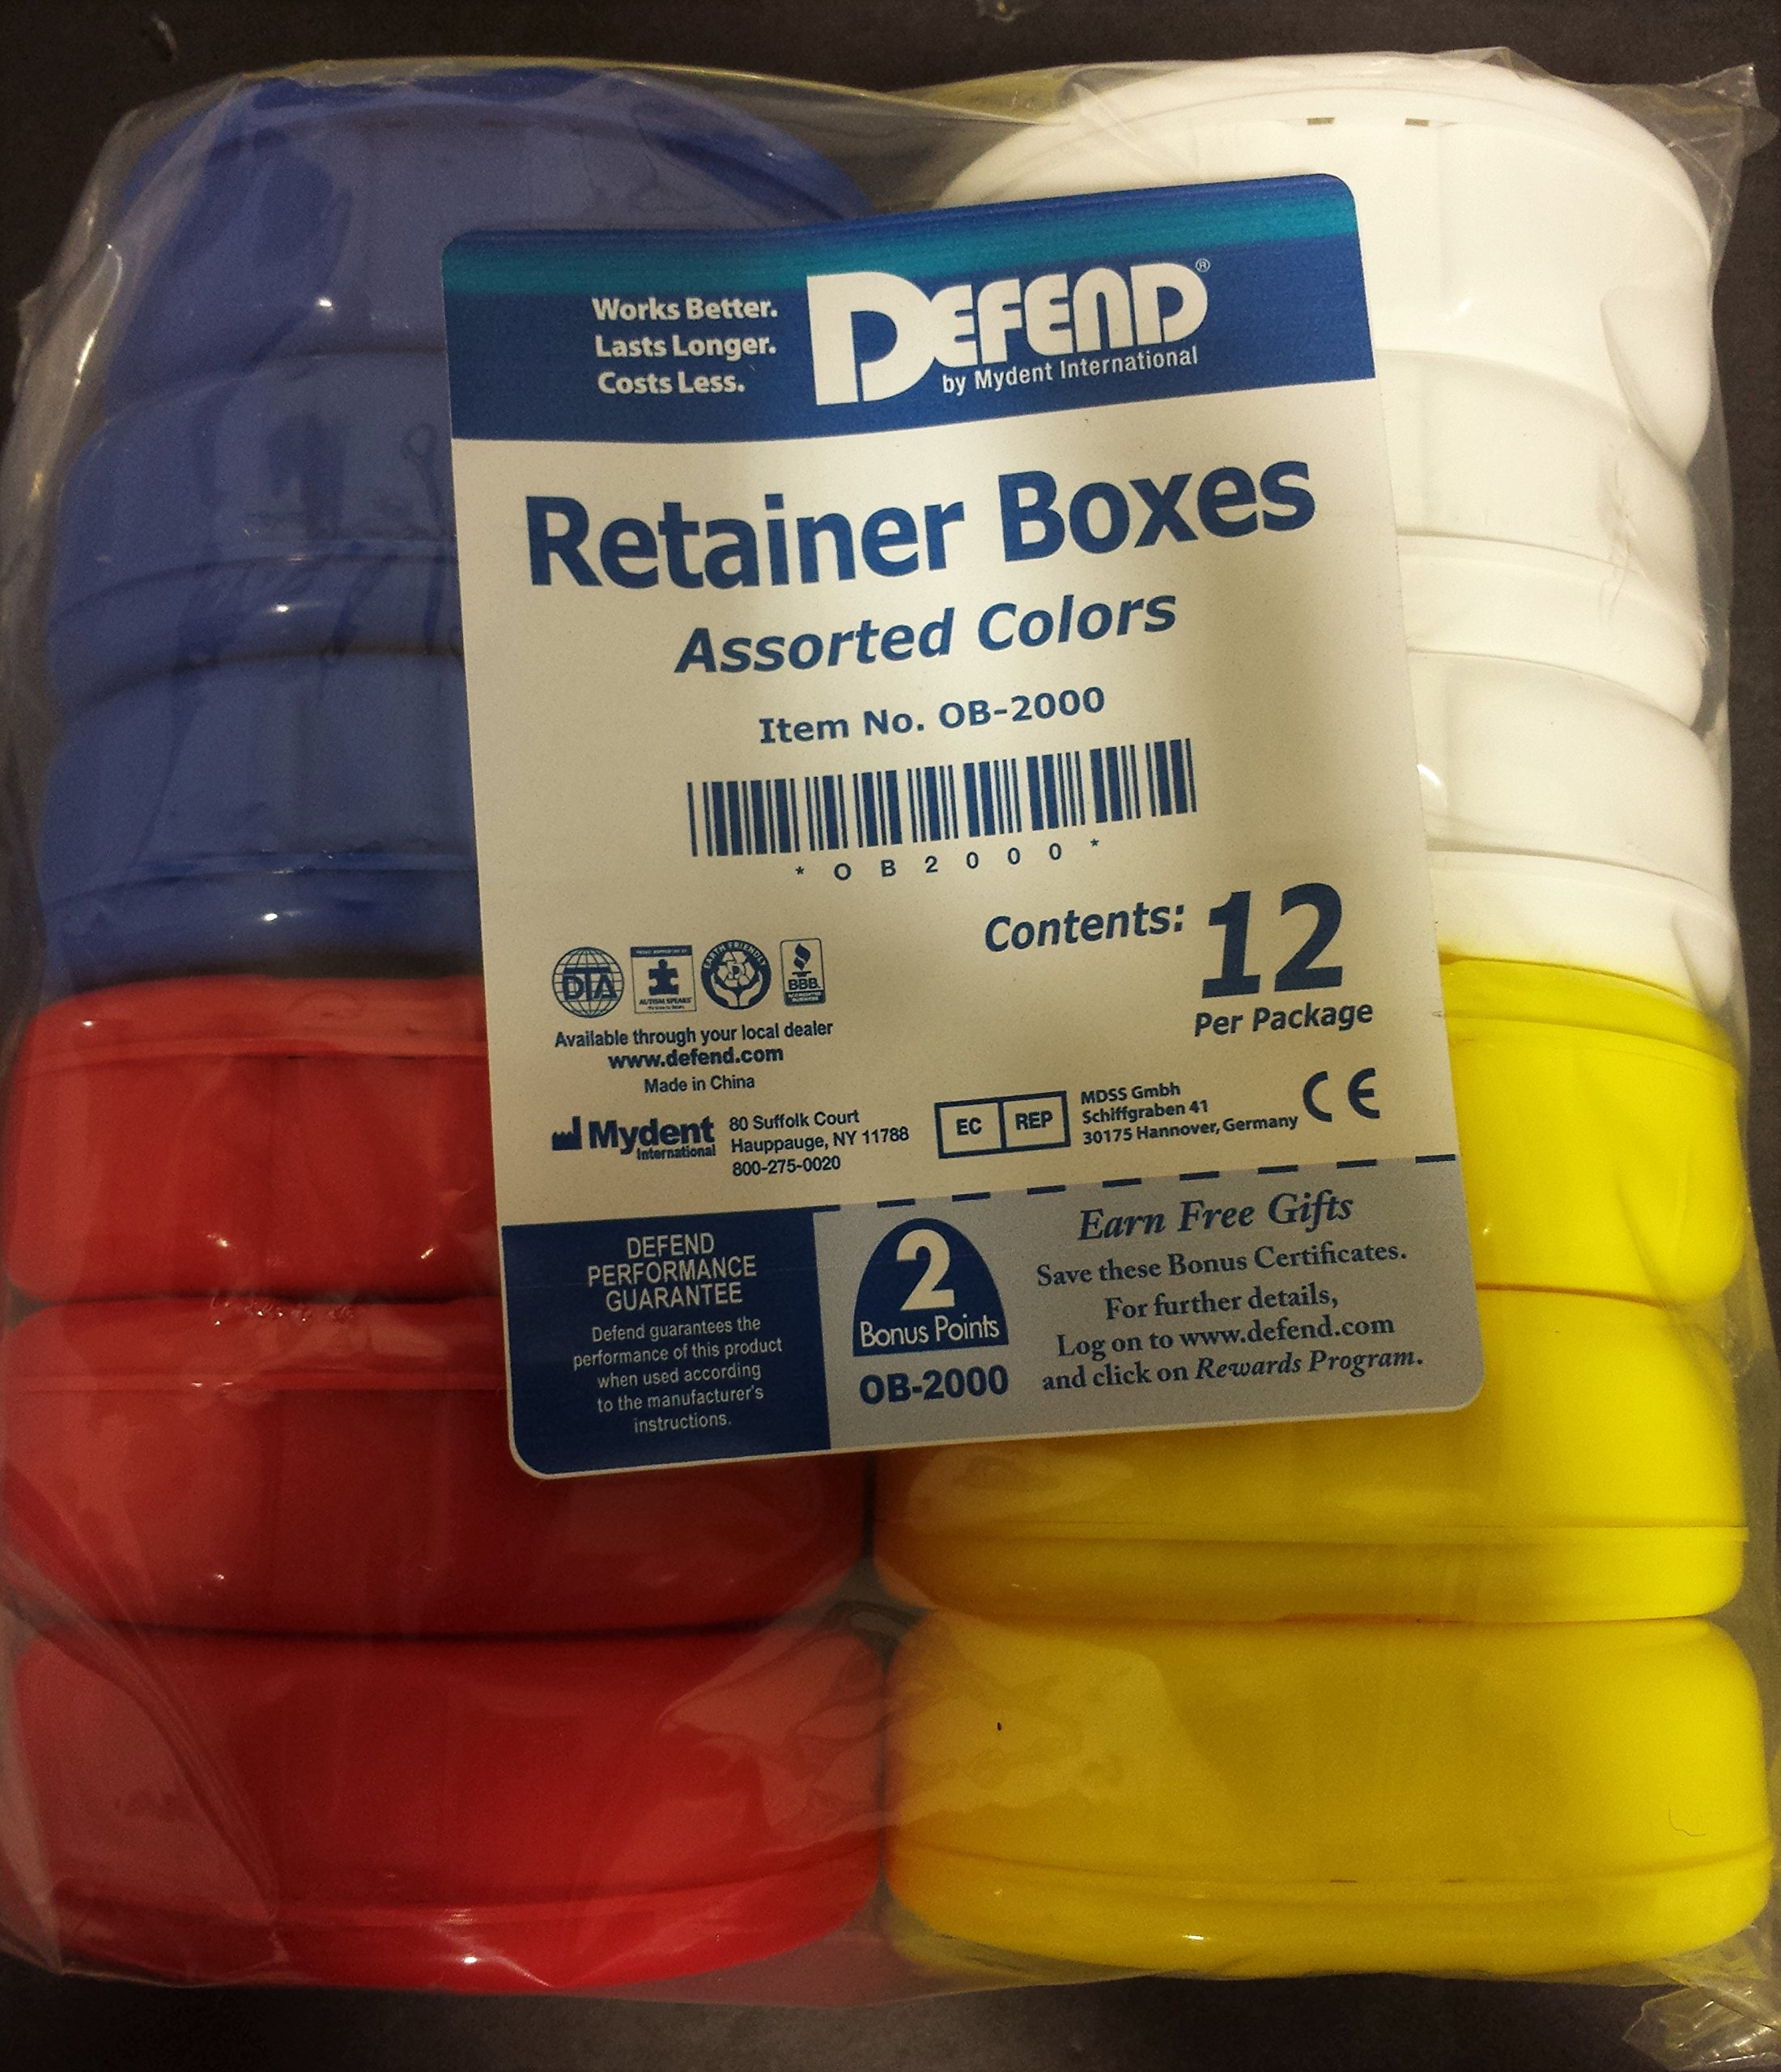 60 Retainer Box Assorted Colors by Defend by DEFEND (Image #2)